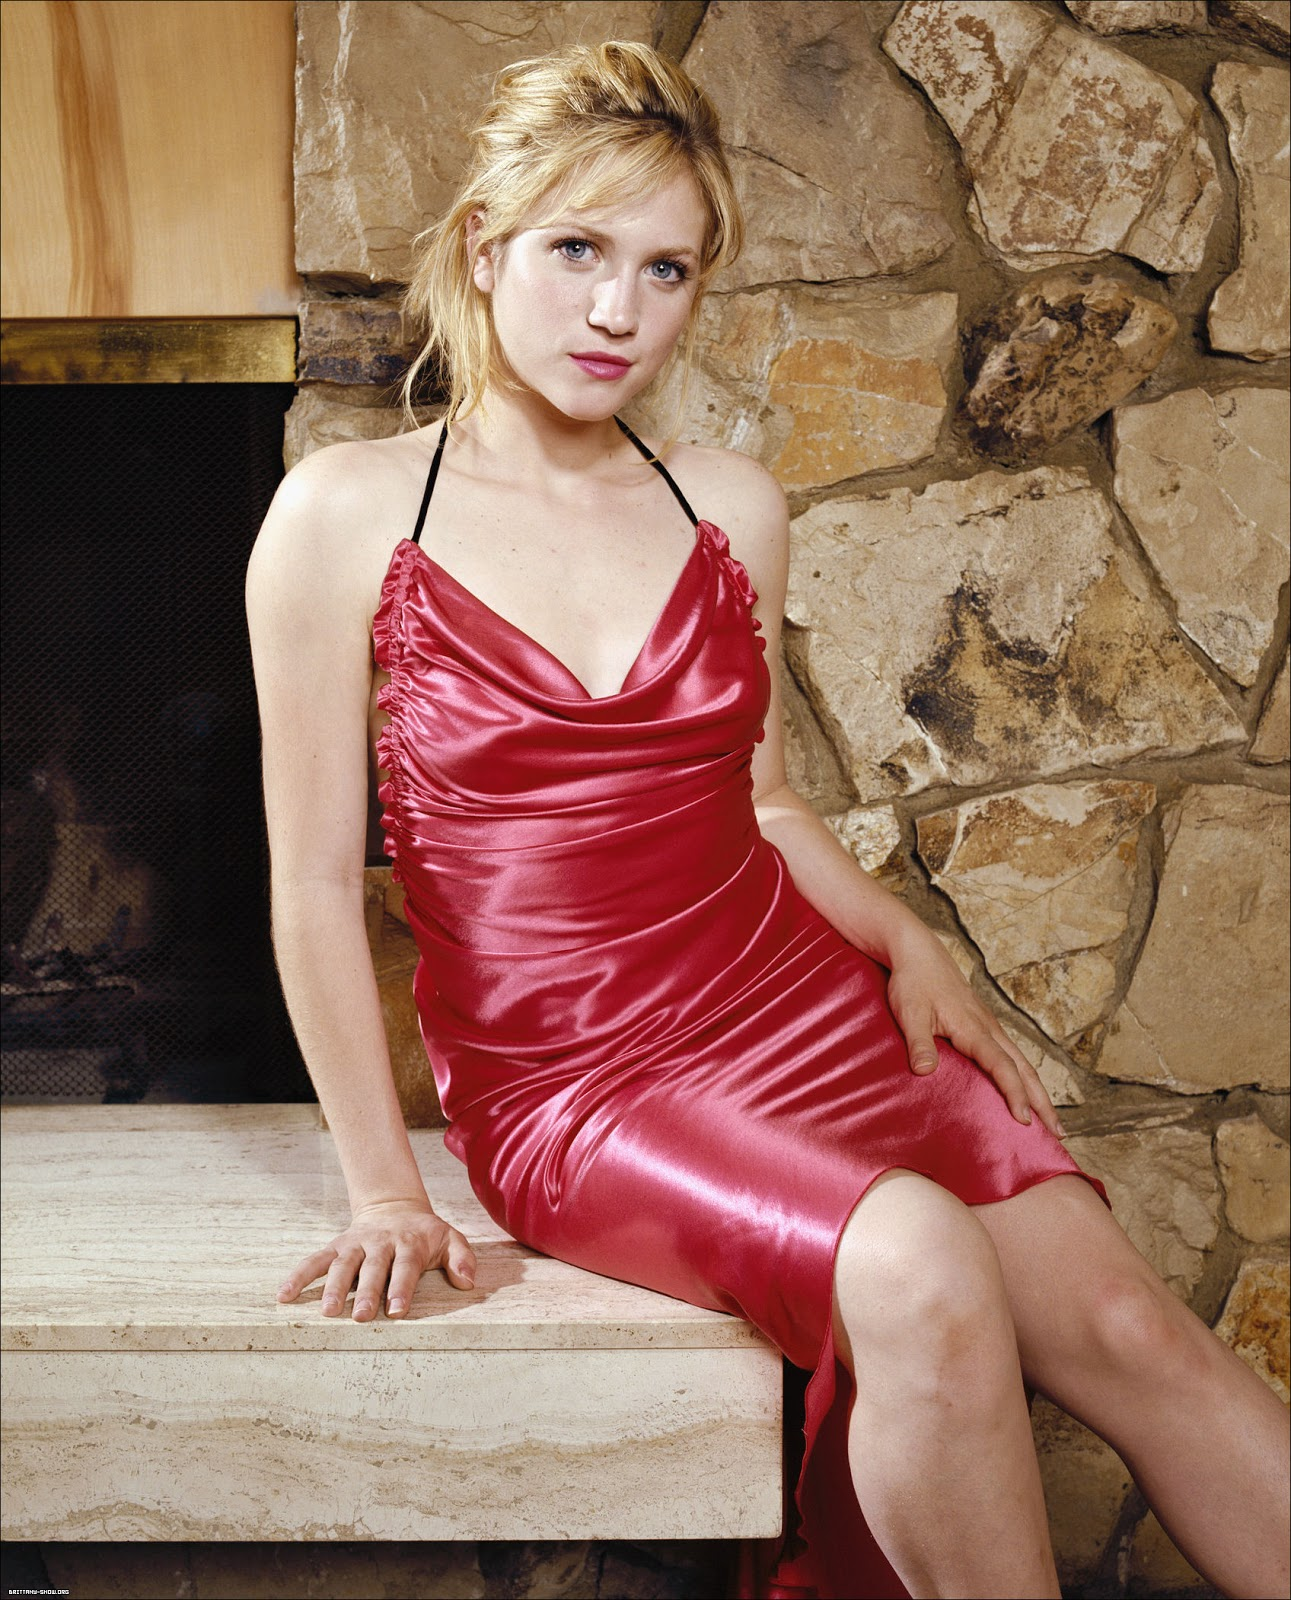 http://4.bp.blogspot.com/-yUrGw8qsIEE/Tv8w3VlYBZI/AAAAAAAAGJw/NwsyRcDniCE/s1600/brittany-snow-red-hot-2012-pictures.jpg